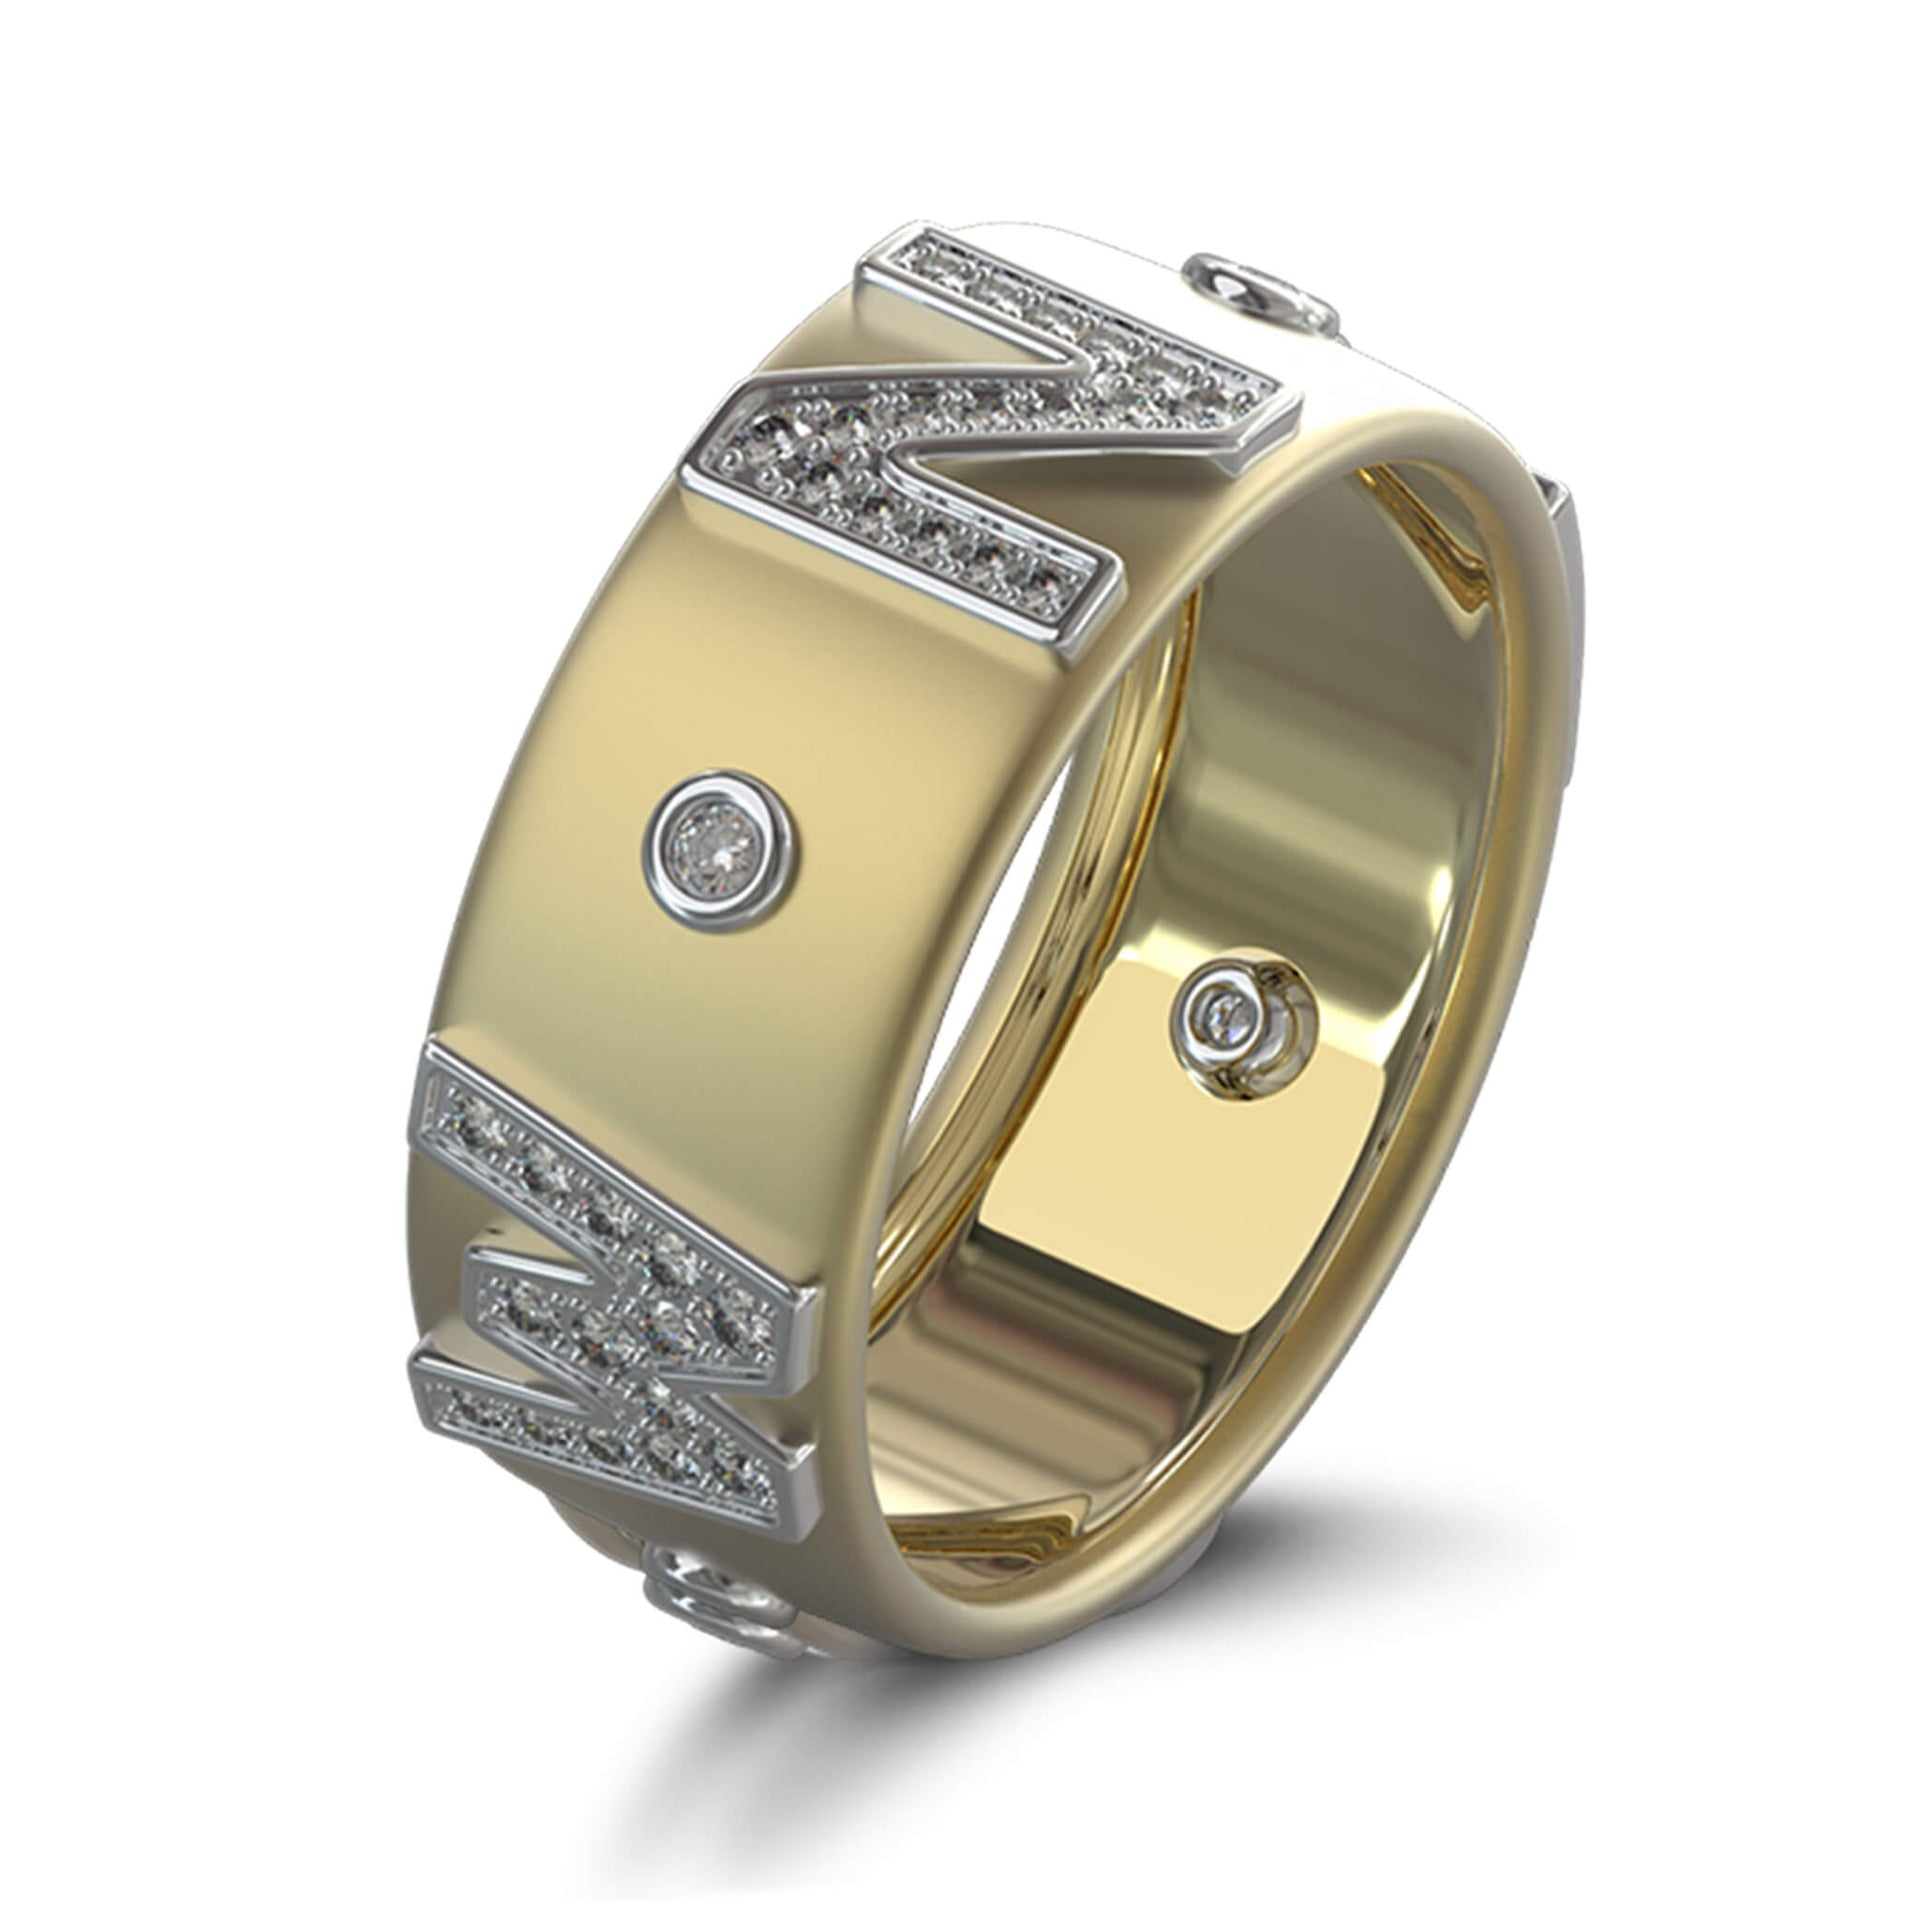 True North Pave Diamond Ring in 18K Yellow and White Gold 3D View